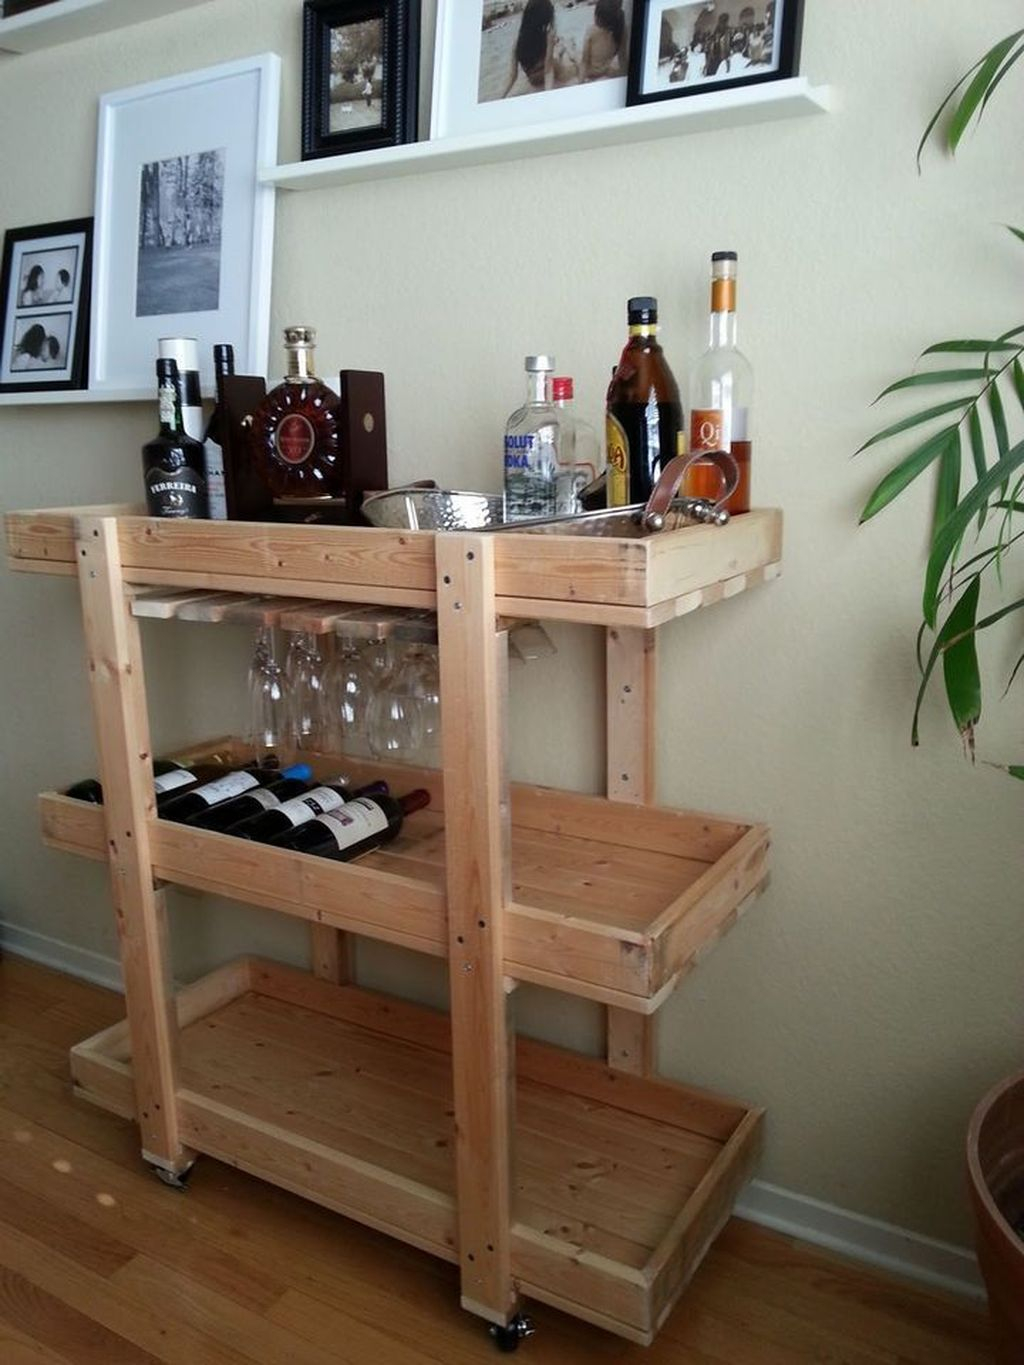 Trendy Pallet Mini Bar Design Ideas To Try 13